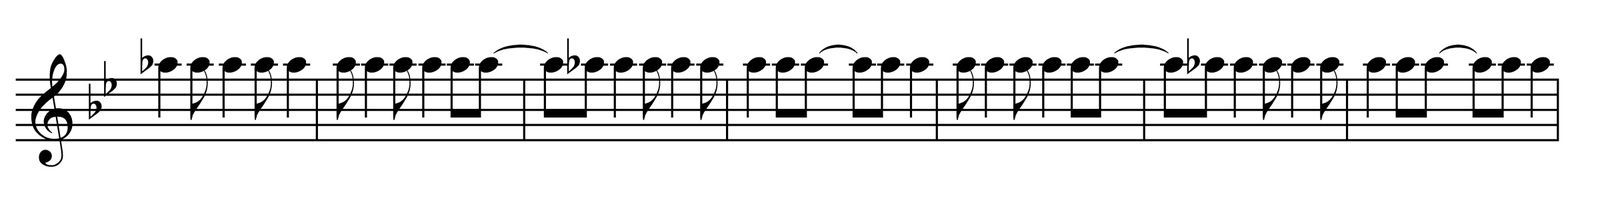 All Music Chords desperado sheet music : Five tips and reflections on Rythm Changes. - jazz-corner.over ...